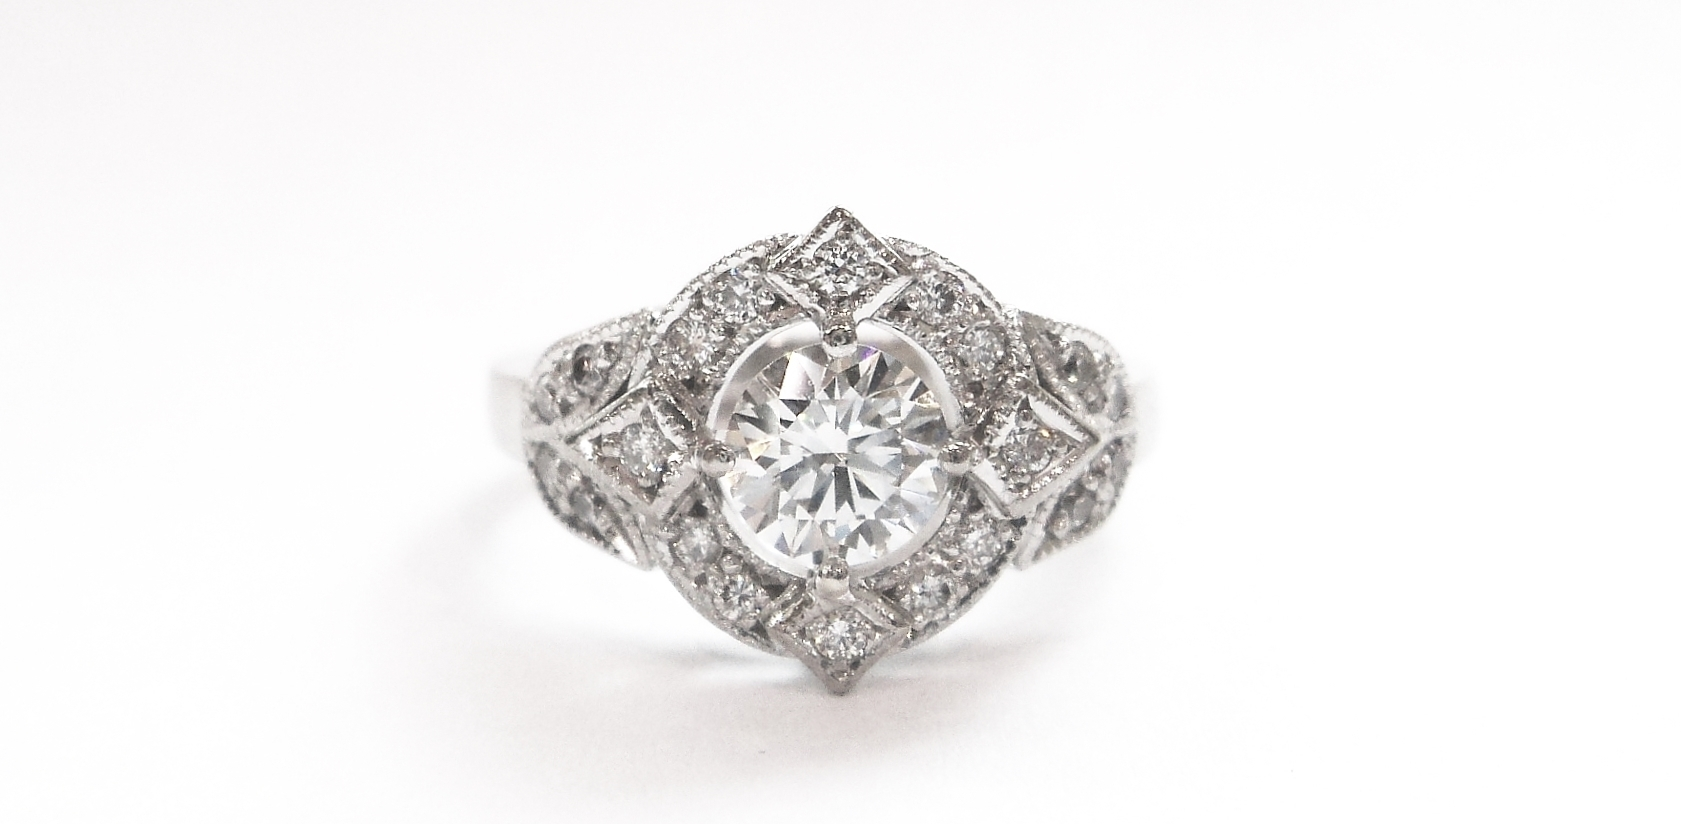 What Is An Art Deco Engagement Ring? Intended For Latest Diamond Art Deco Vintage Style Anniversary Bands (View 14 of 15)